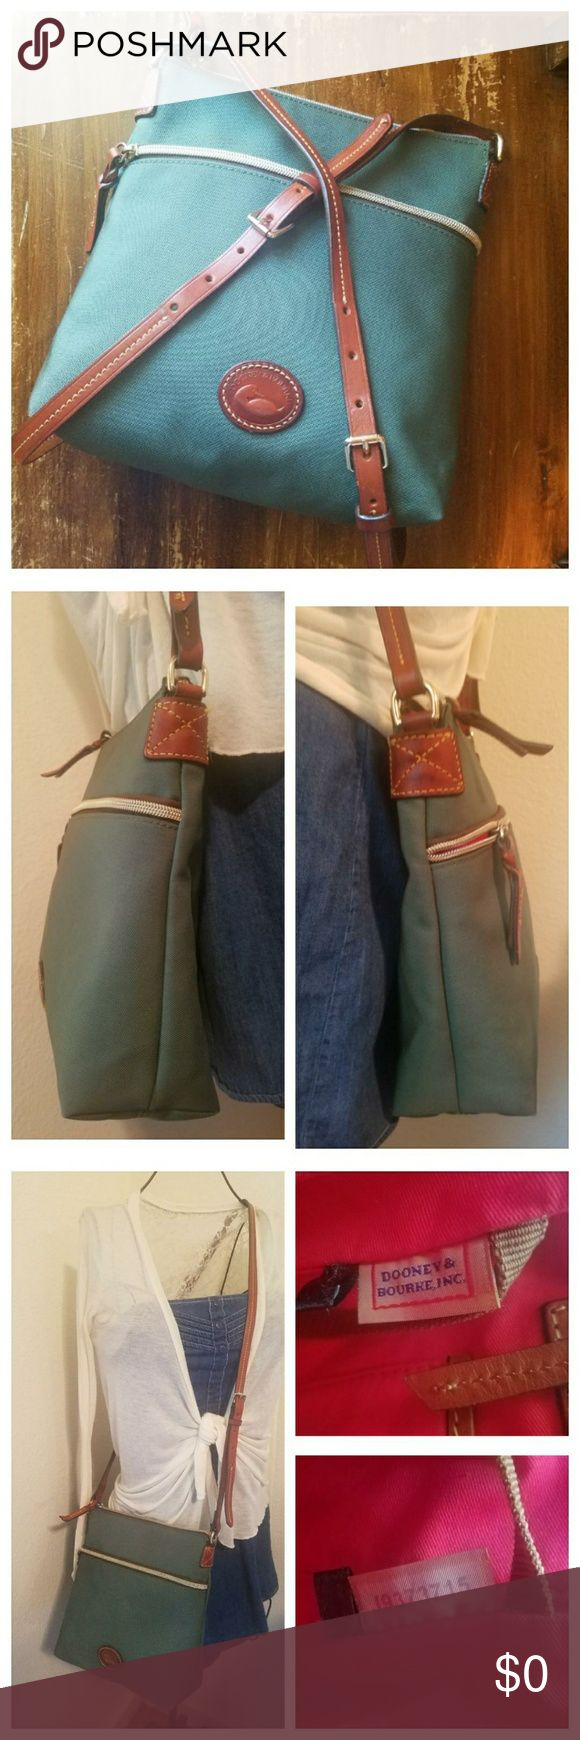 Dooney & Bourke Nylon Crossbody D&B Teal Nylon Crossbody in excellent used condition. Brown leather accents including zipper pulls, shoulder strap & Dooney duck emblem. Patina/darkening of the leather is visible. Very clean interior. 1 front slip zip pocket. Main storage area has 1 zip & 1 slip pocket on the back wall & 2 small slip pockets on the front wall. Key finder cord. Serial #J9373715. From my 🚬🆓🐶🐱🆓🏠. 〰N🚫 TRADES, N🚫 HOLDS, N🚫 LOWBALL OFFERS〰 Dooney & Bourke Bags Crossbody…